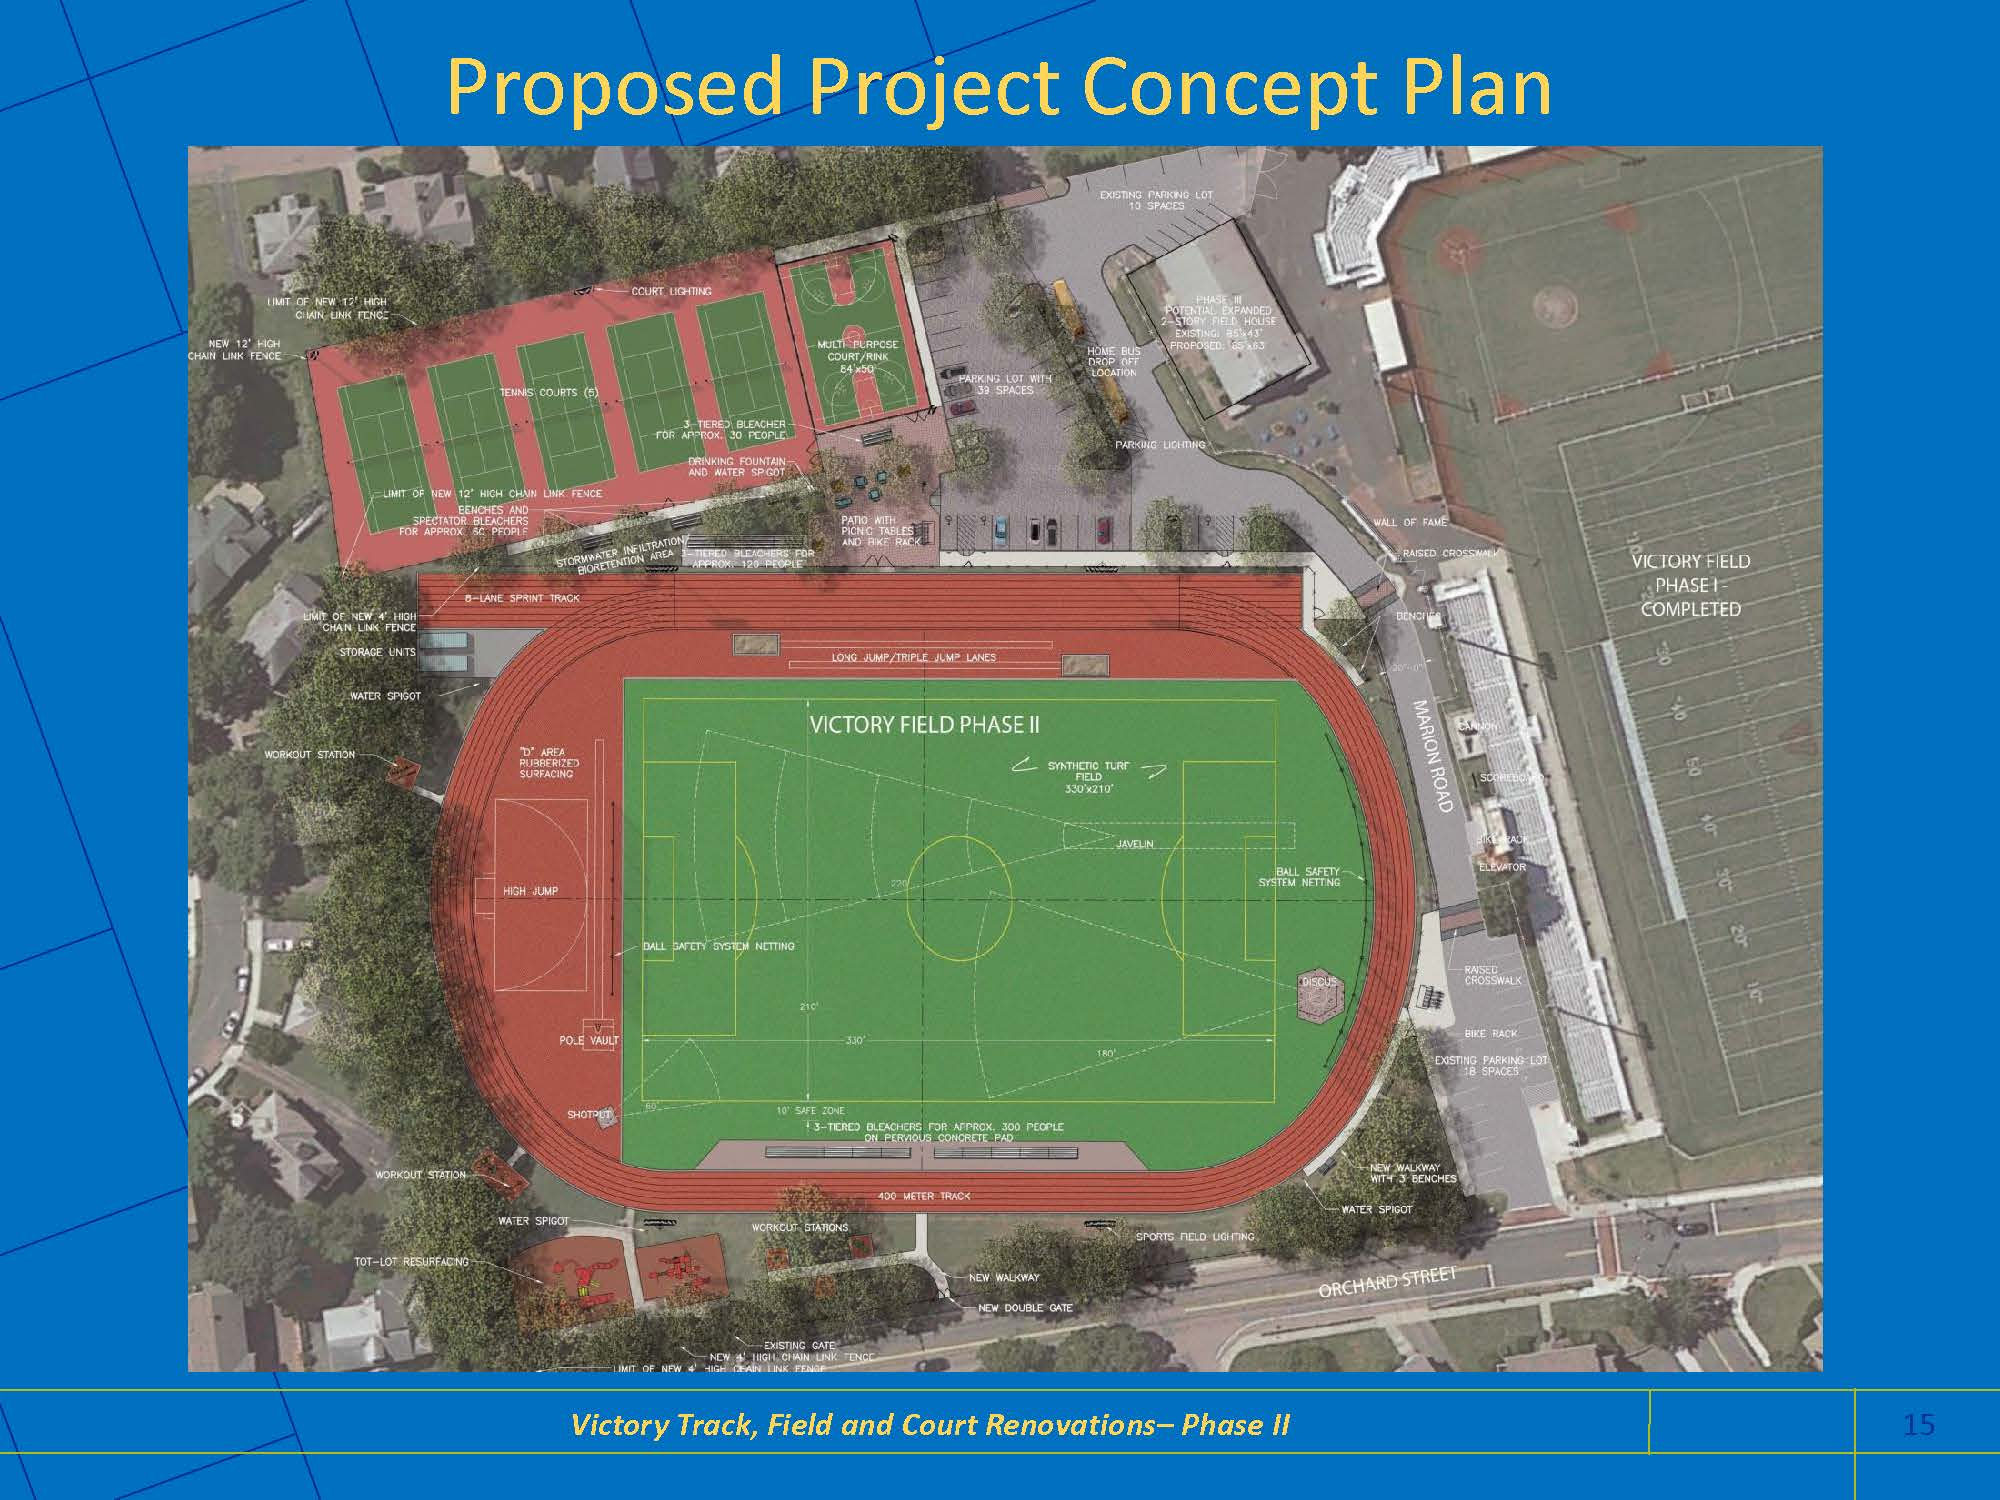 Victory Track, Field and Court Proposed Project Concept Plan - September 2014